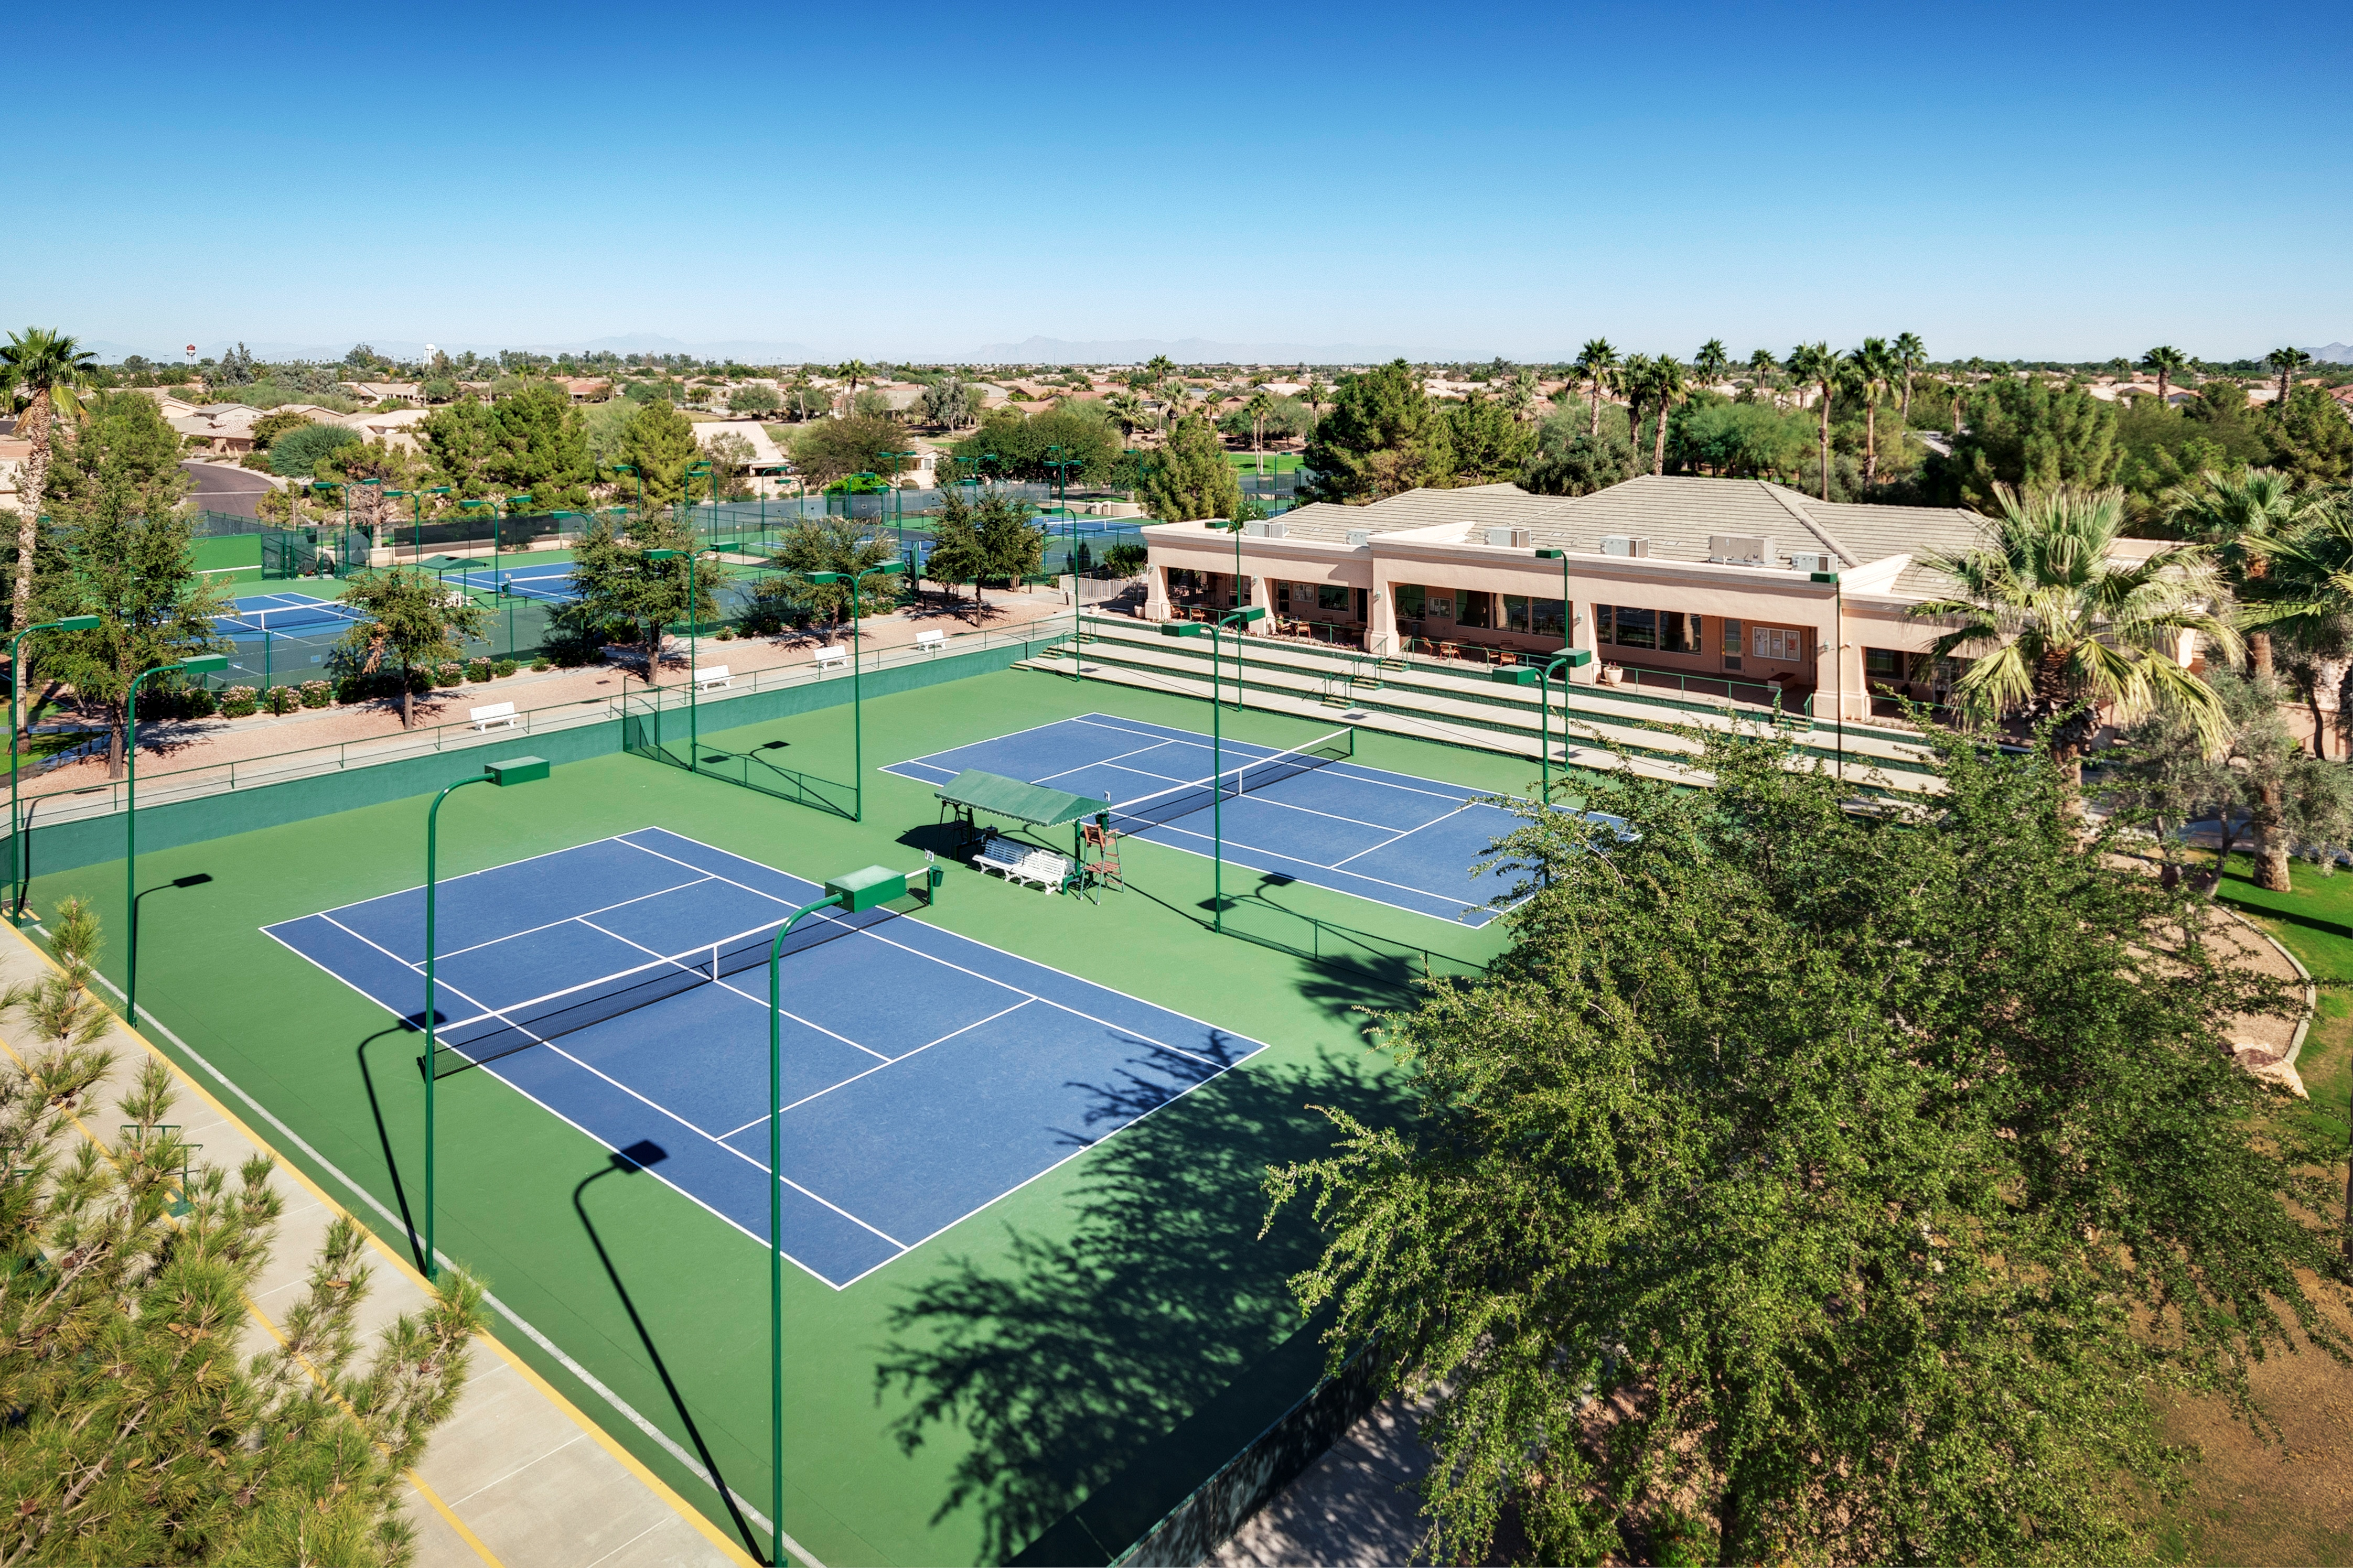 10 Multiple Tennis Courts